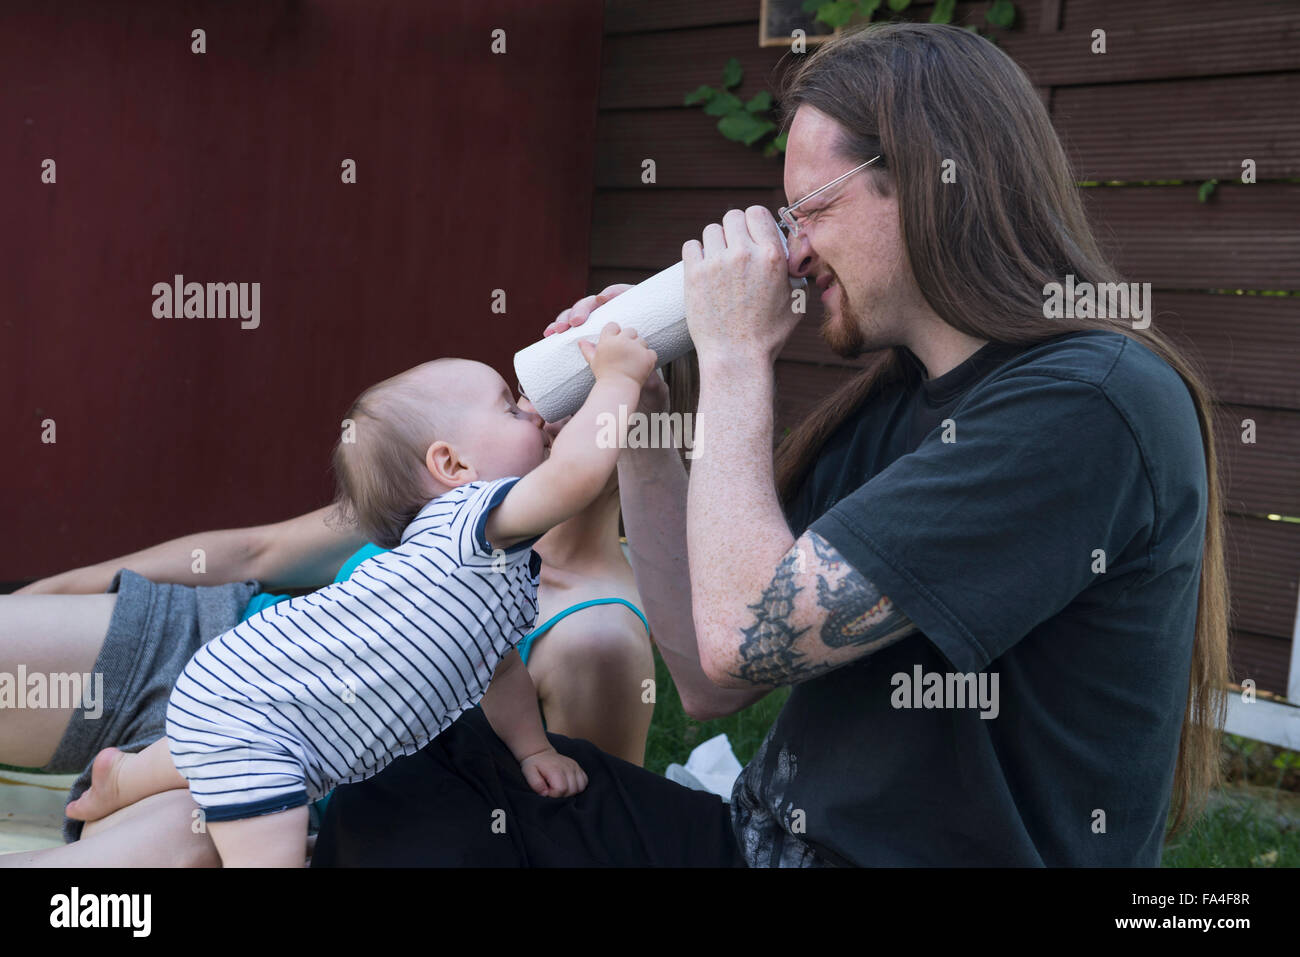 Baby boy and his father looking through a roll of paper towels from both ends, Munich, Bavaria, Germany - Stock Image